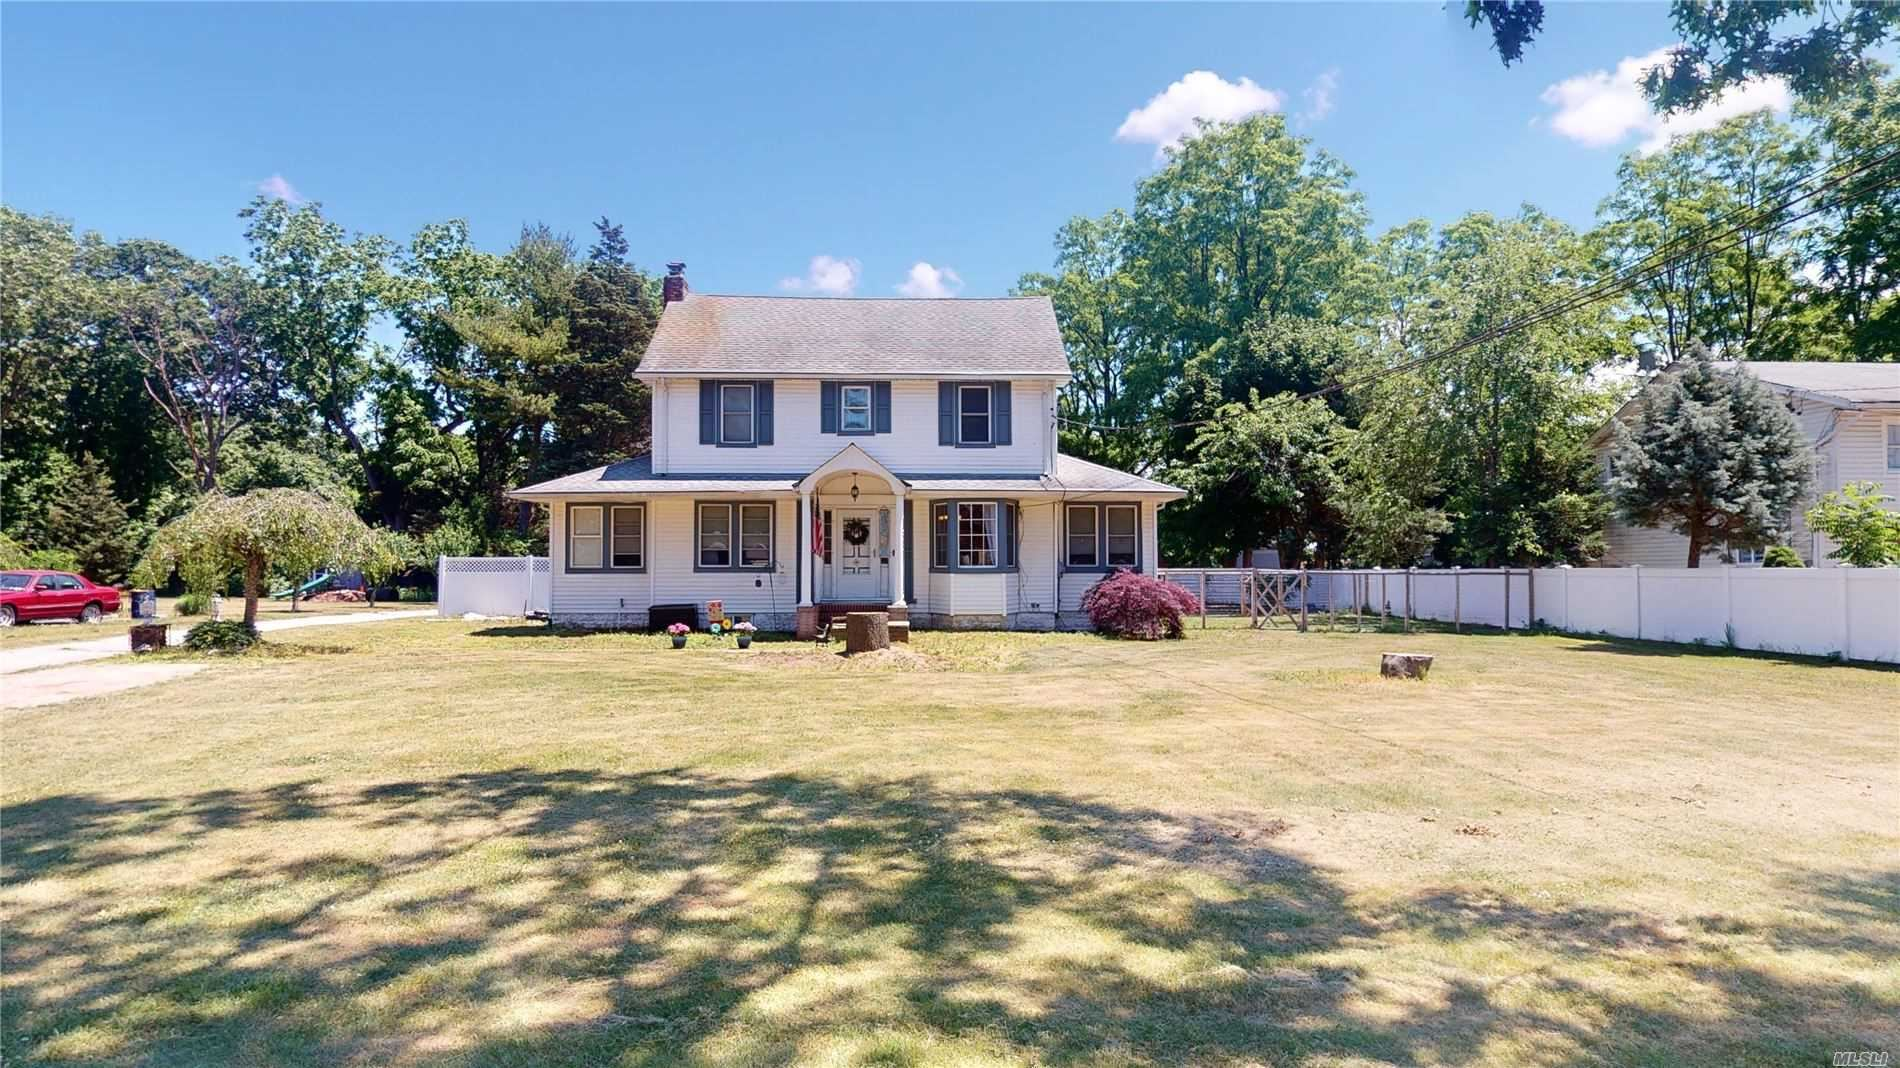 15 N Coleman Road, Centereach, NY 11720 - MLS#: 3222523